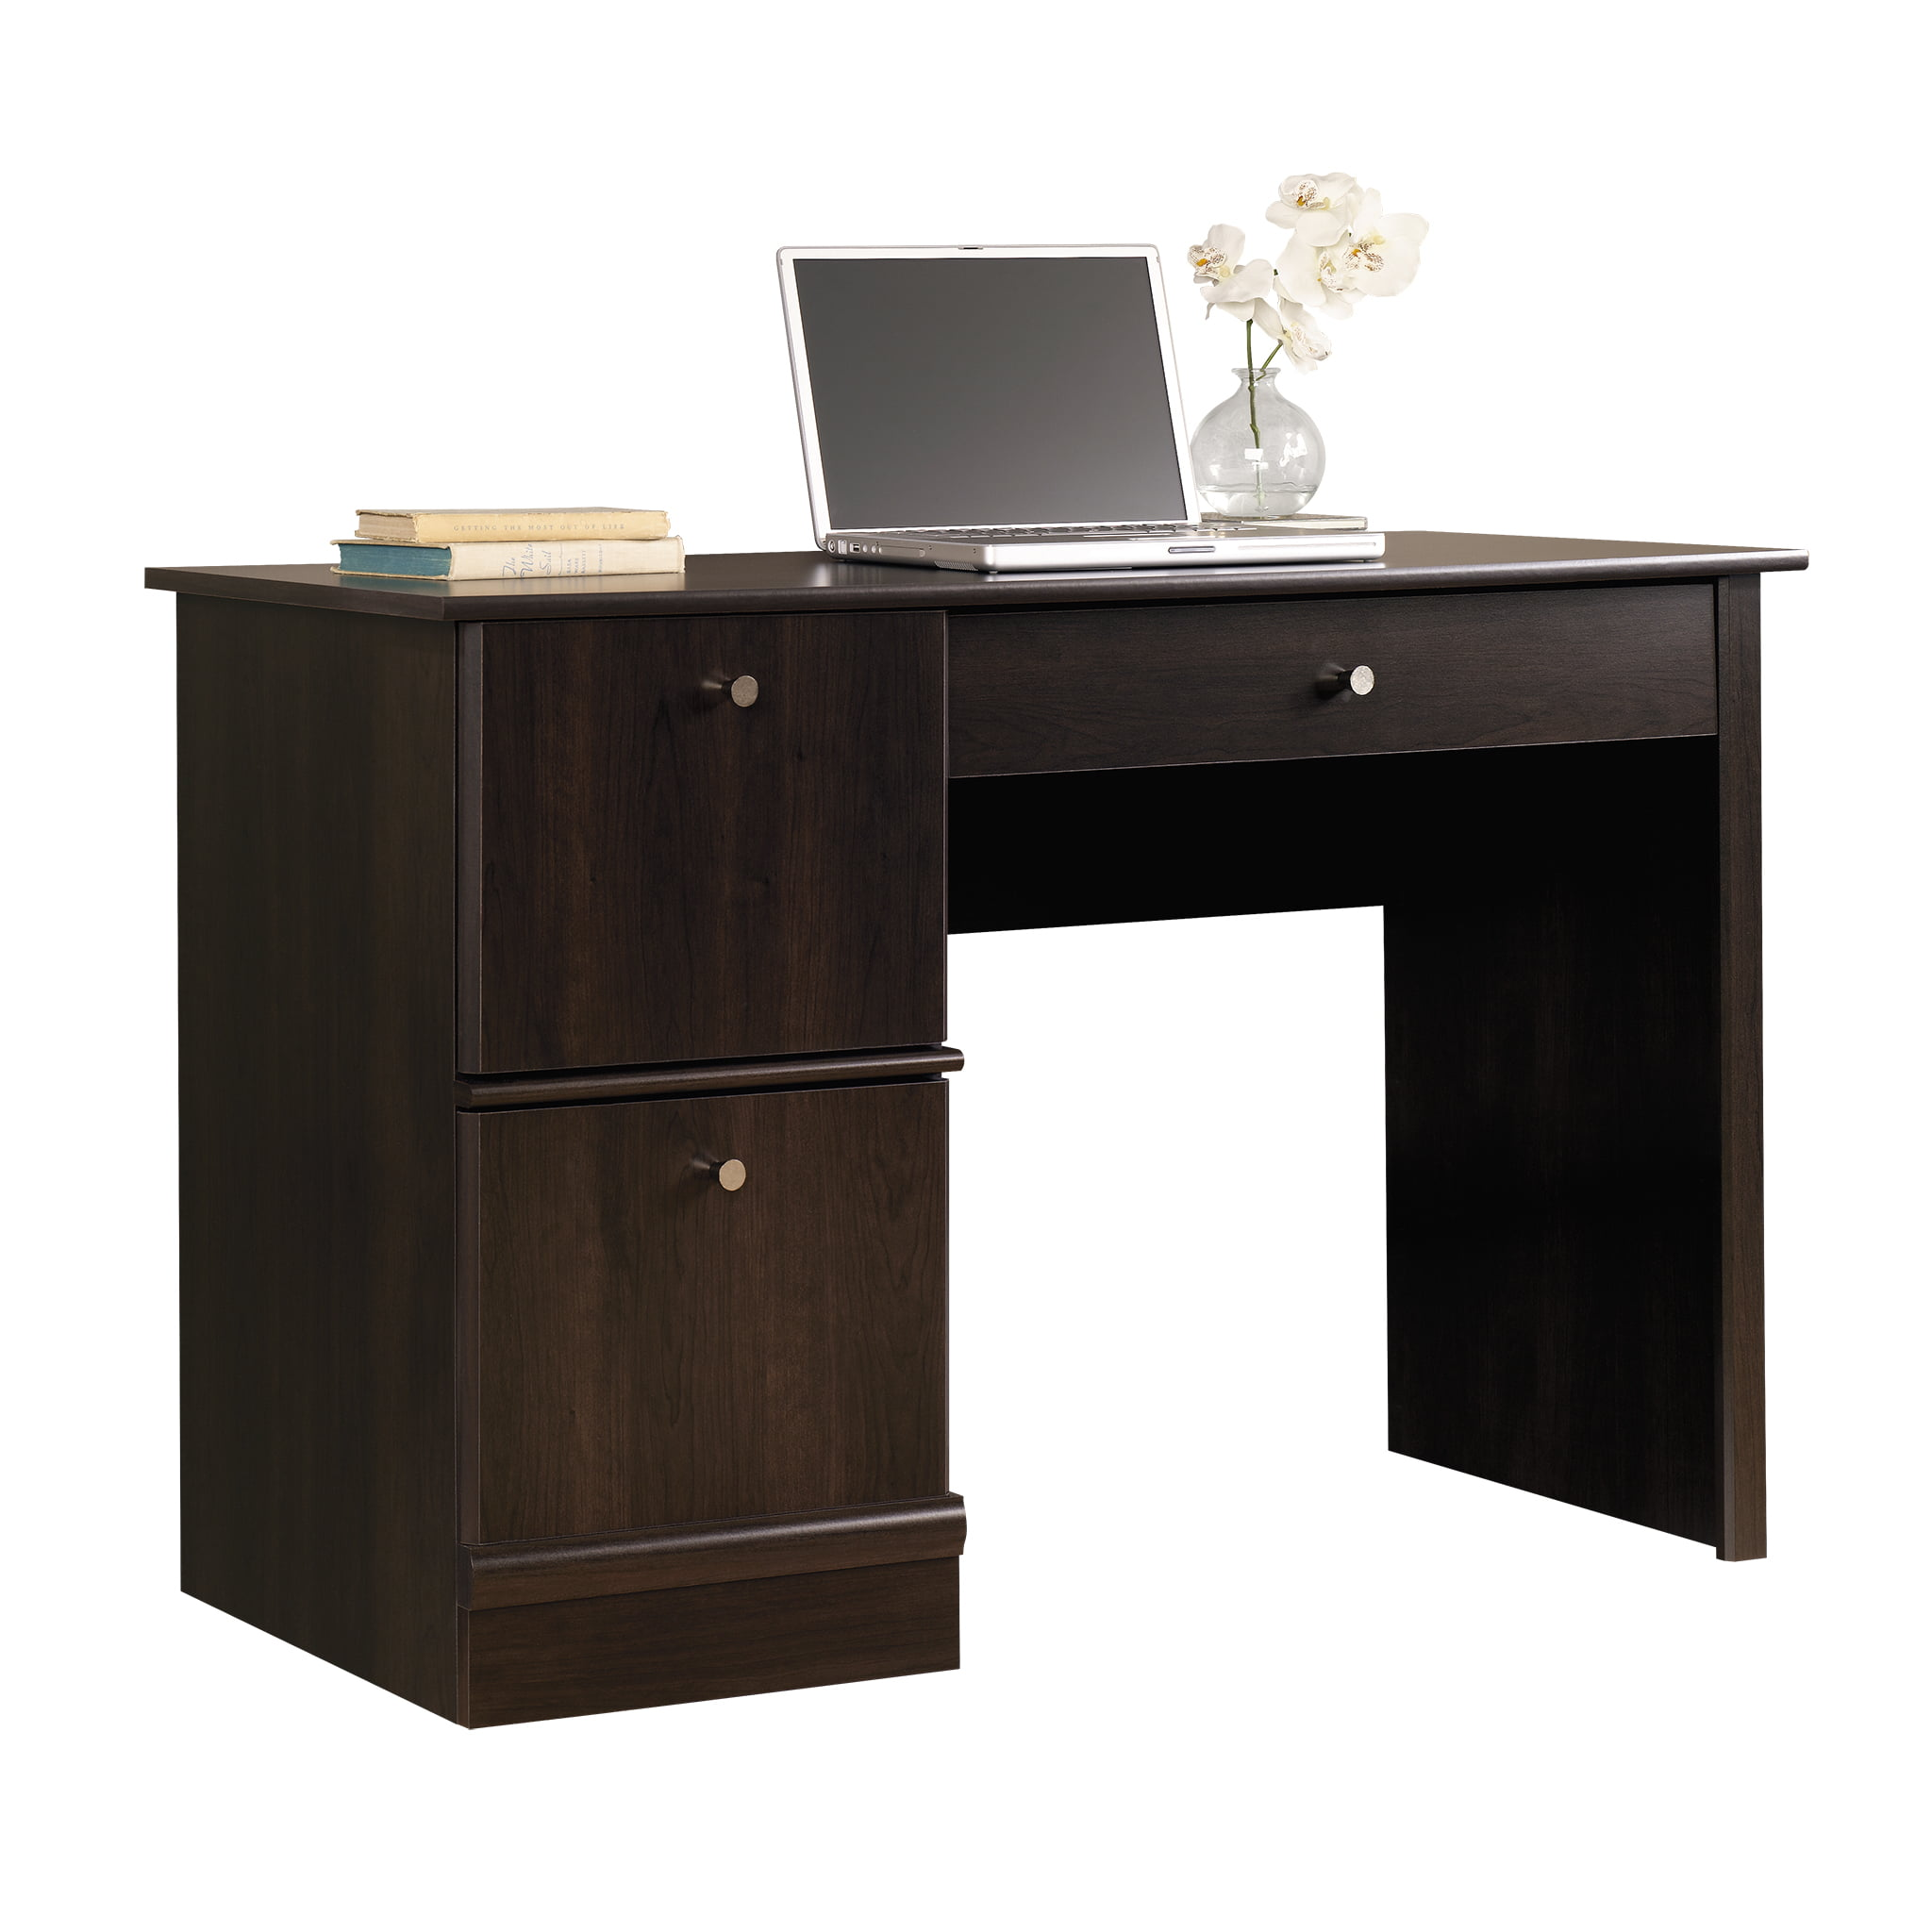 Sauder Computer Desk, Cinnamon Cherry Finish - Walmart.com